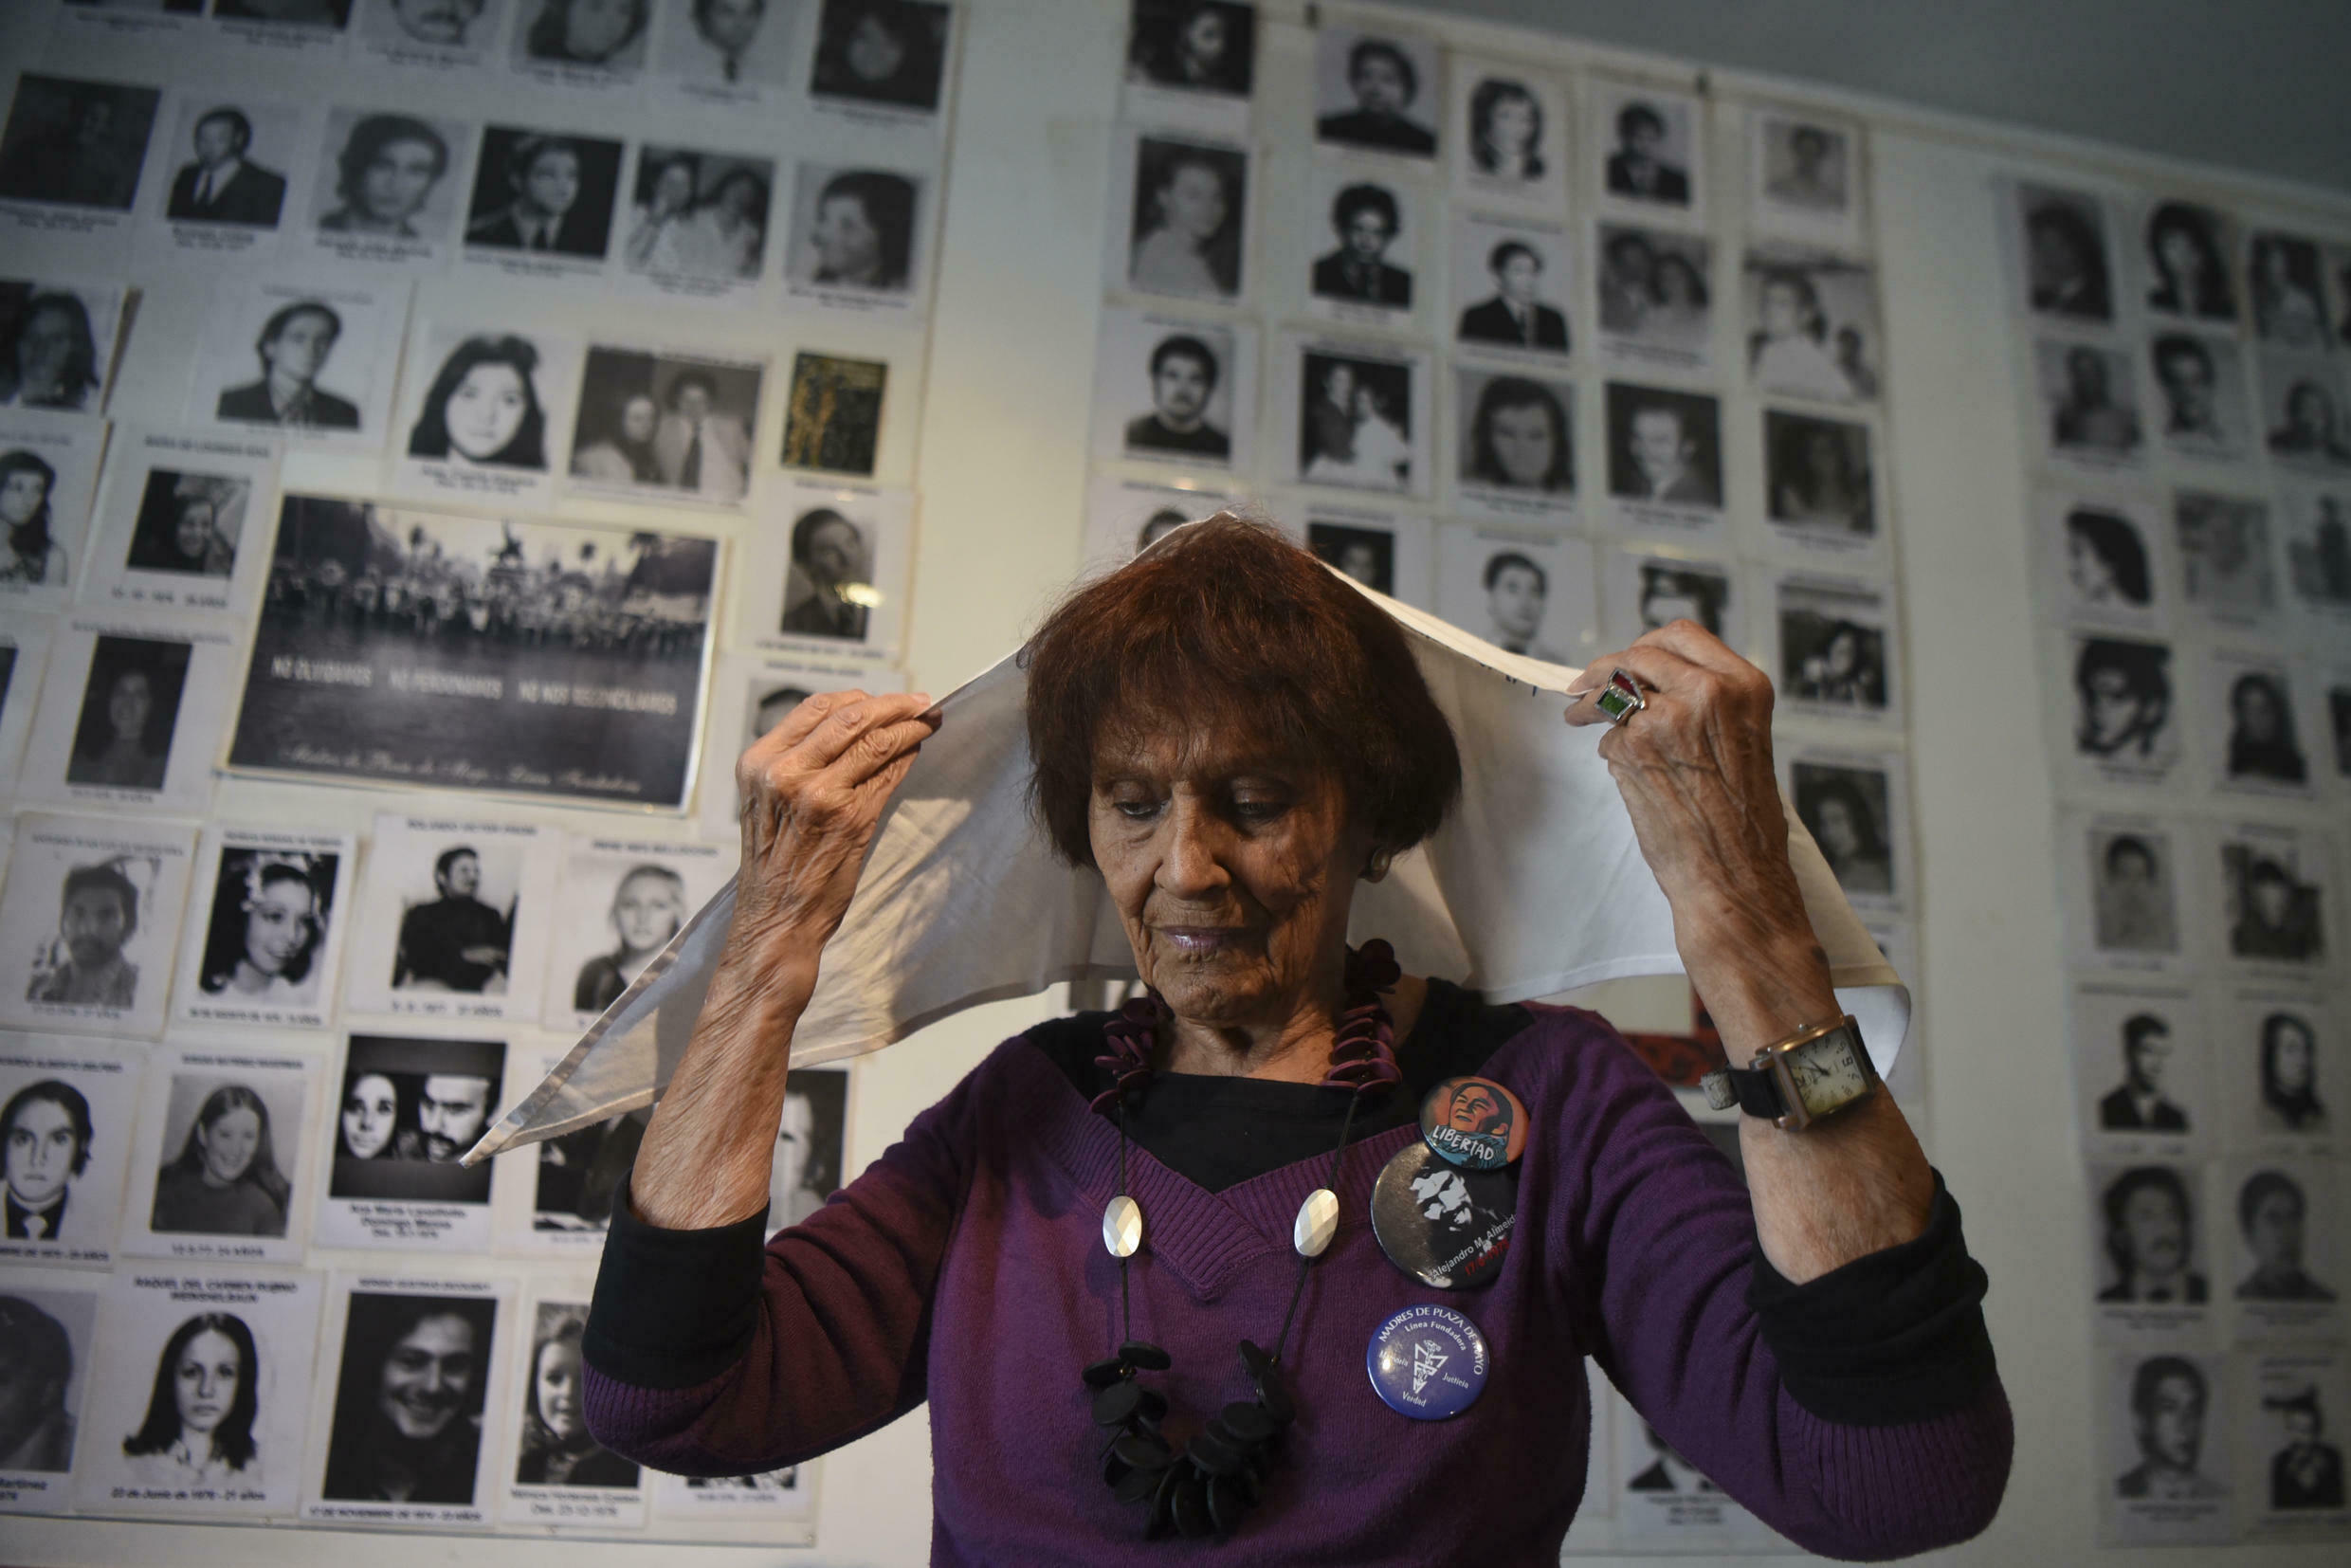 Taty Almeida, one of the Madres de Plaza de Mayo, in front of pictures of people who disappeared under the dictatorship in Buenos Aires